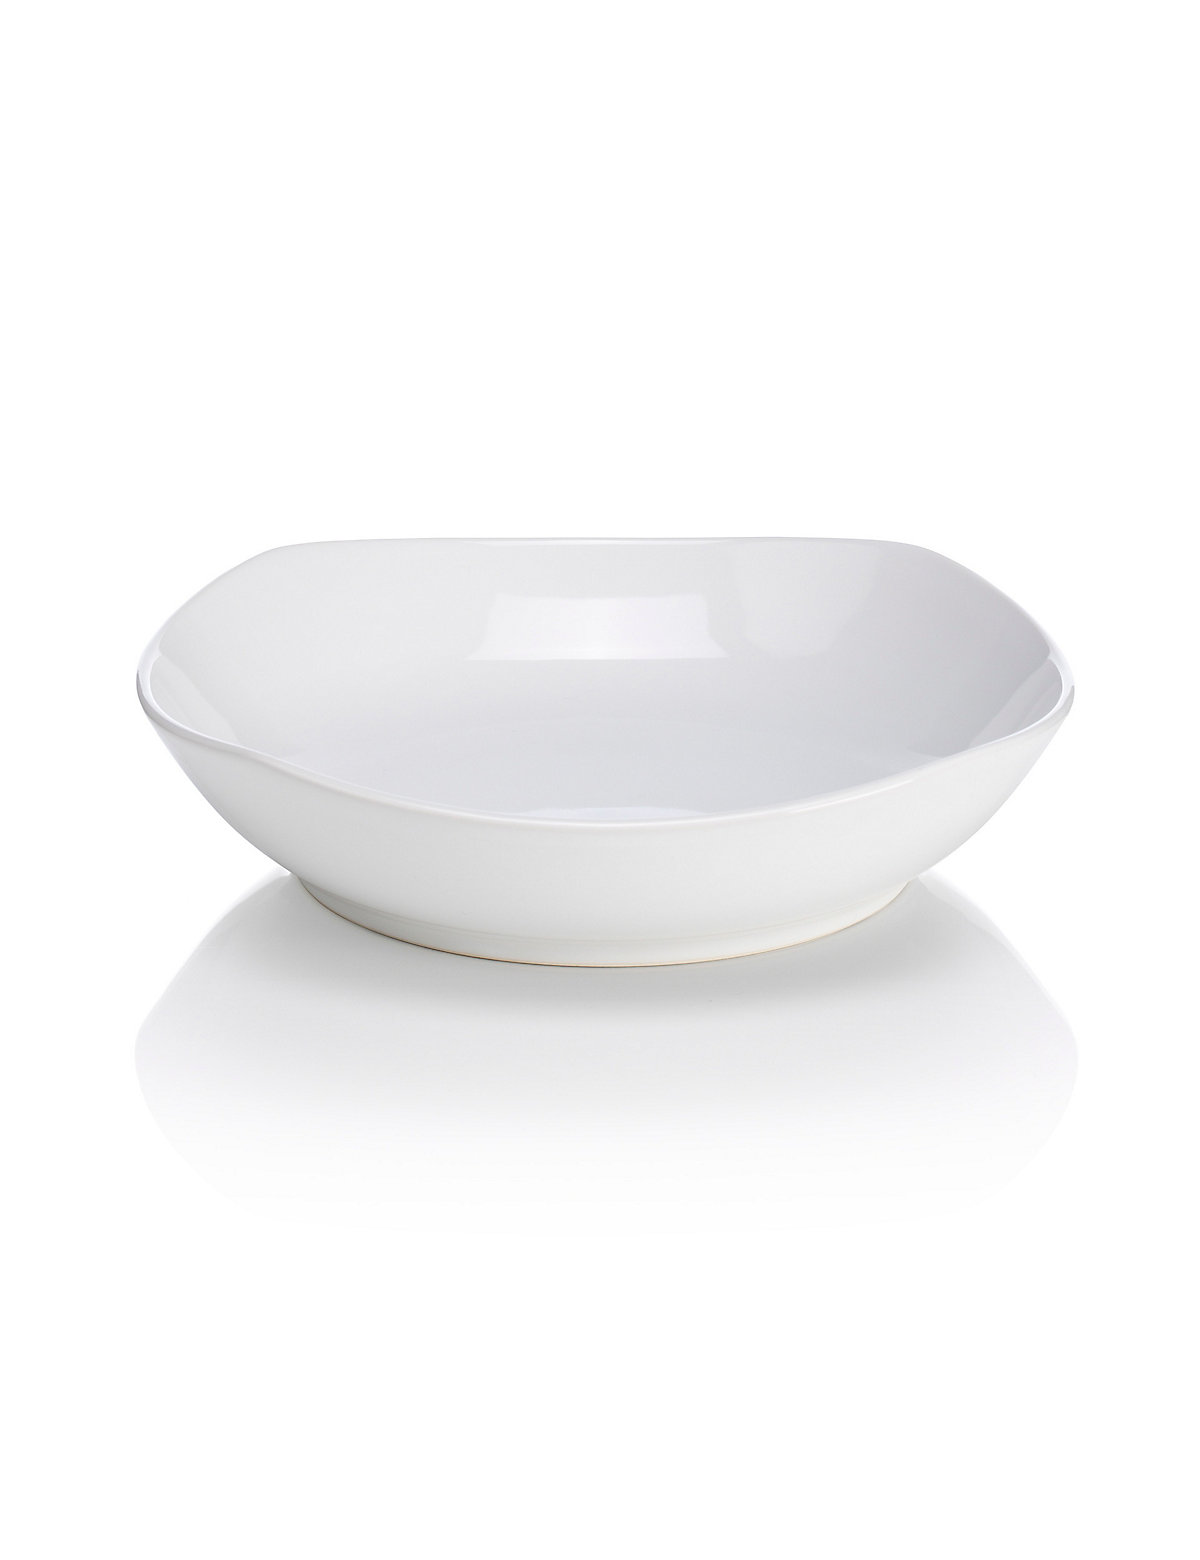 Crockery Andante Square Pasta Bowl White